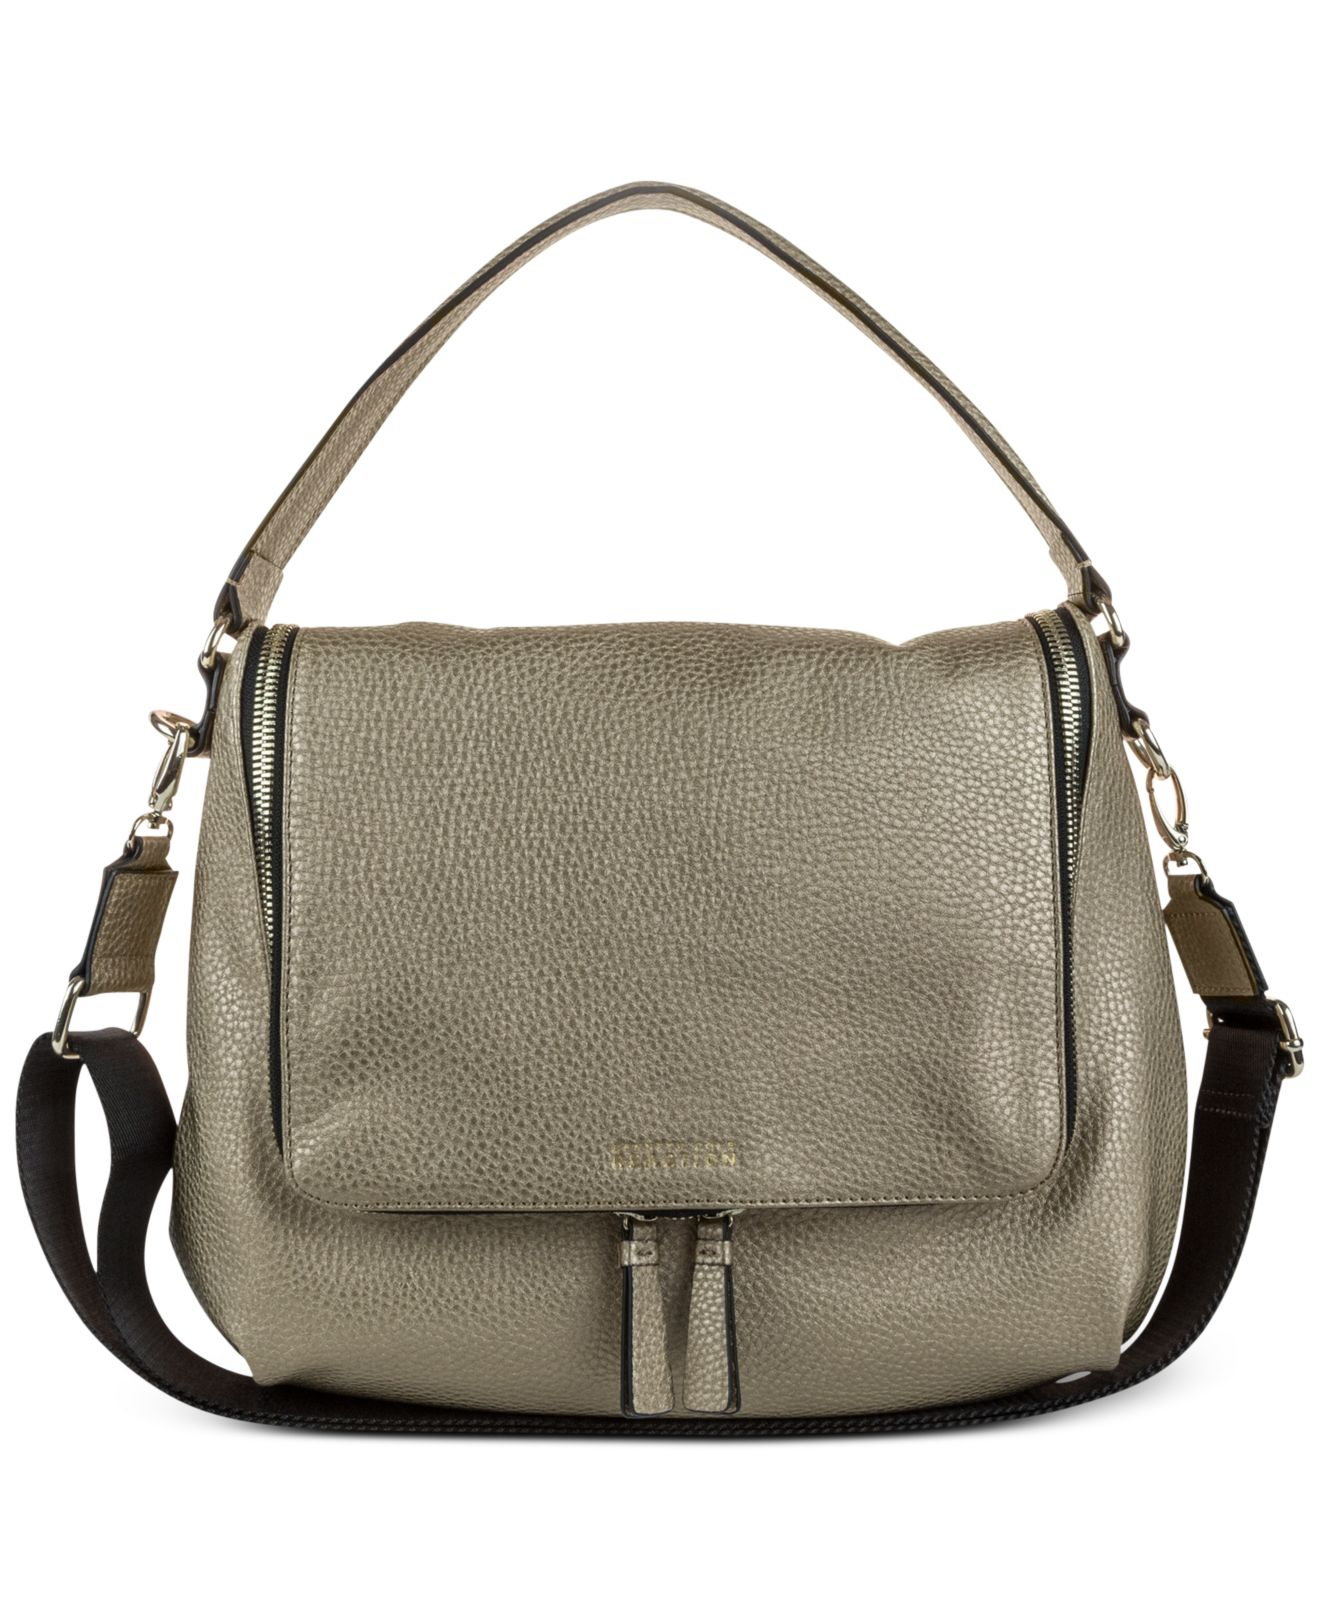 37ad28dc04 Lyst - Kenneth Cole Reaction Avery Hobo in Black